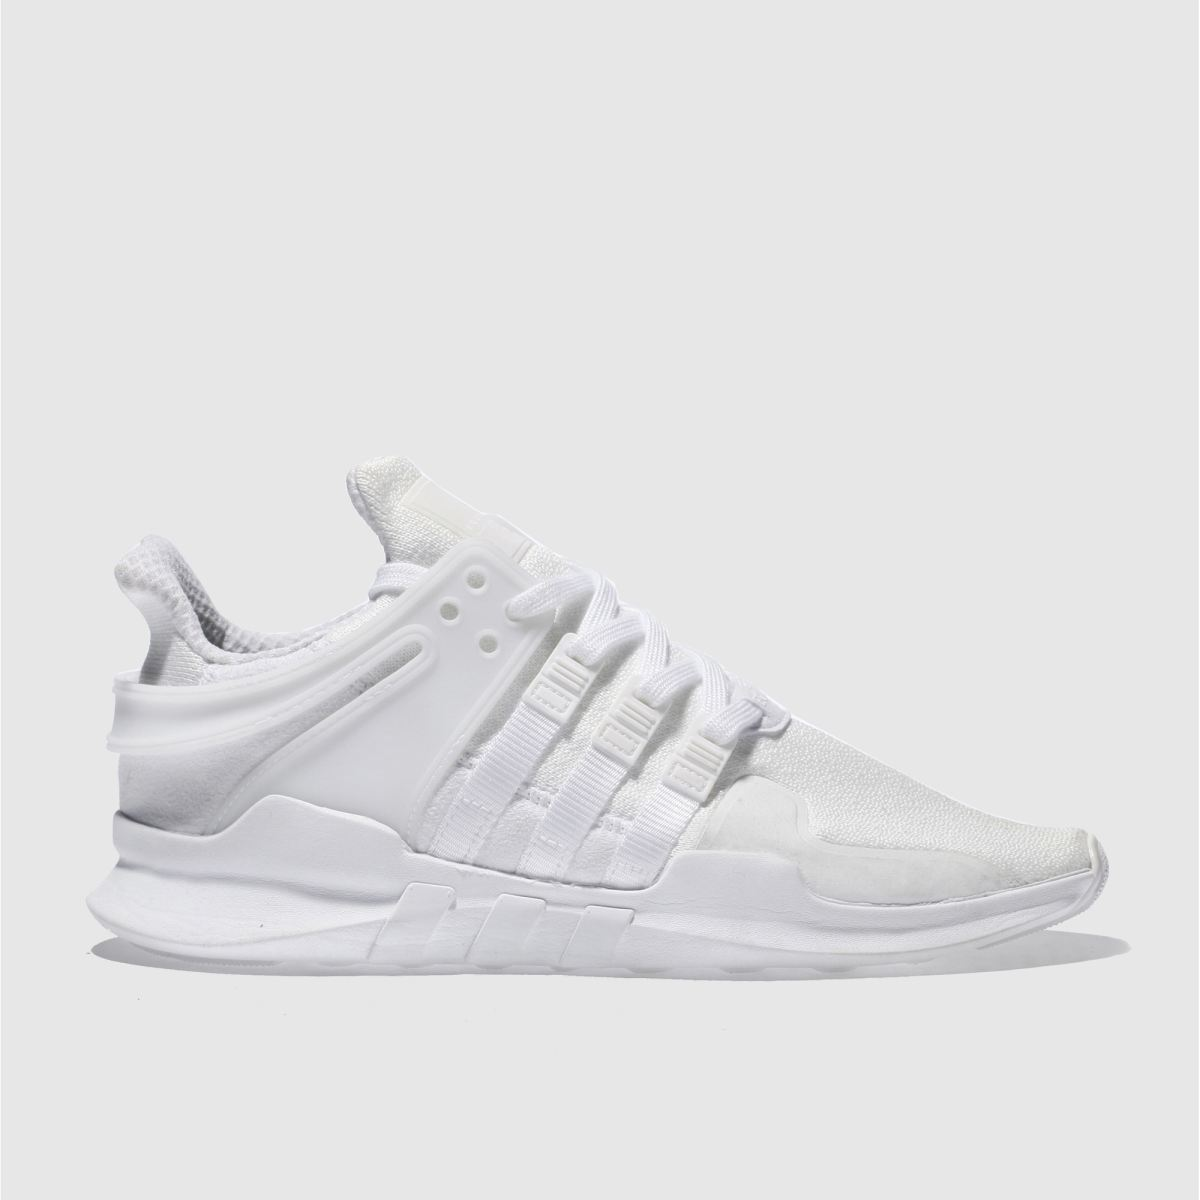 adidas white eqt support adv trainers